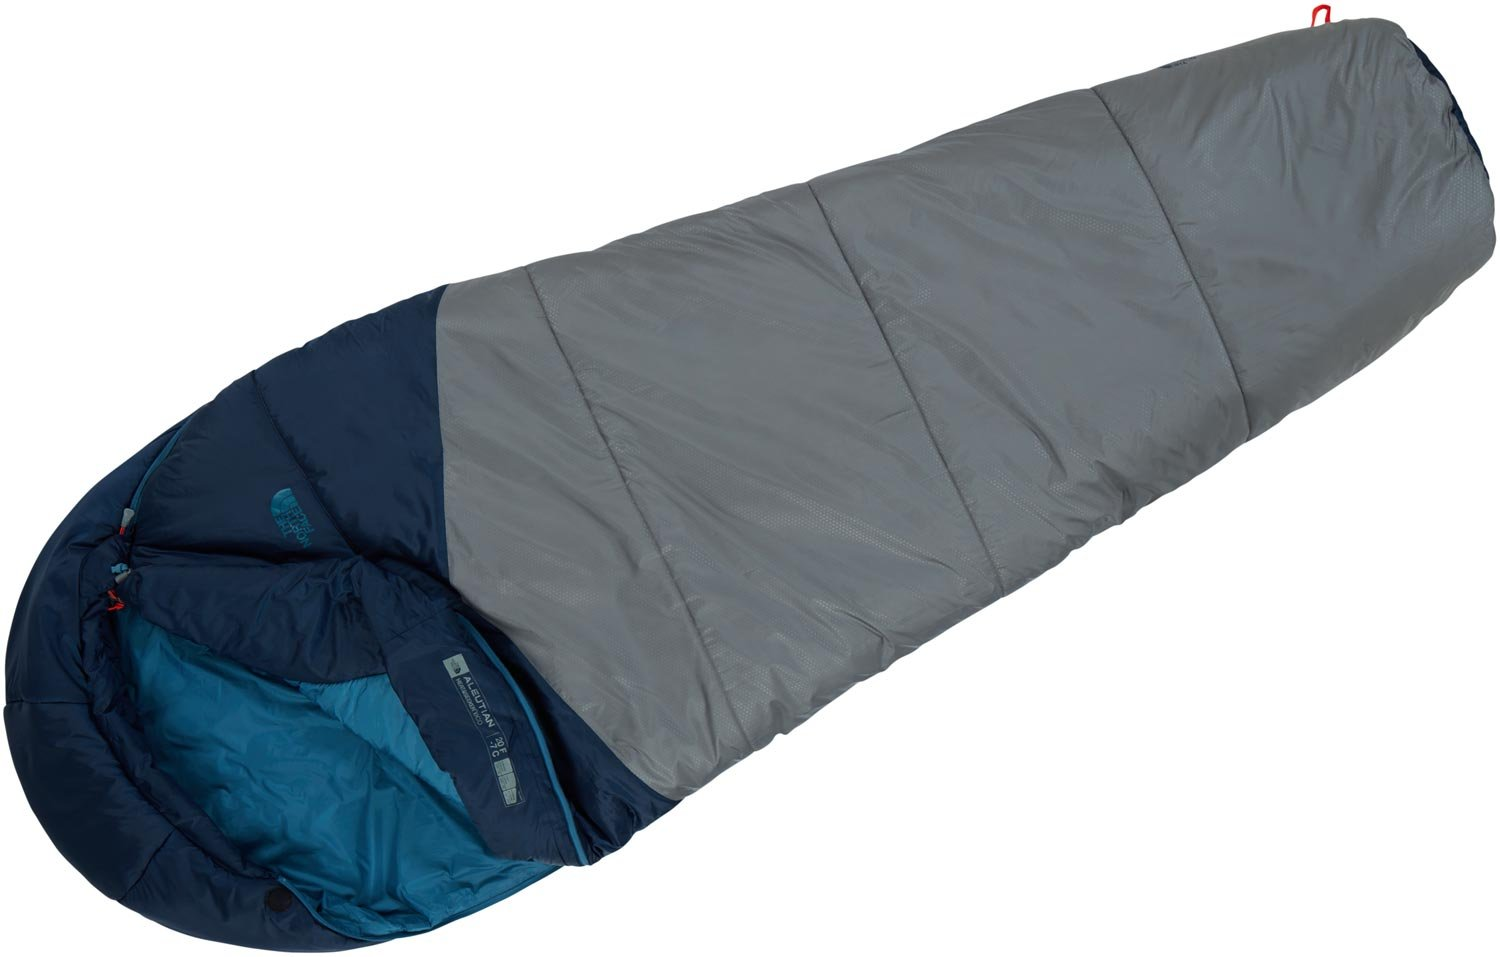 The North Face Aleutian 20/-7 Saco de Dormir, Unisex Adulto: Amazon.es: Deportes y aire libre